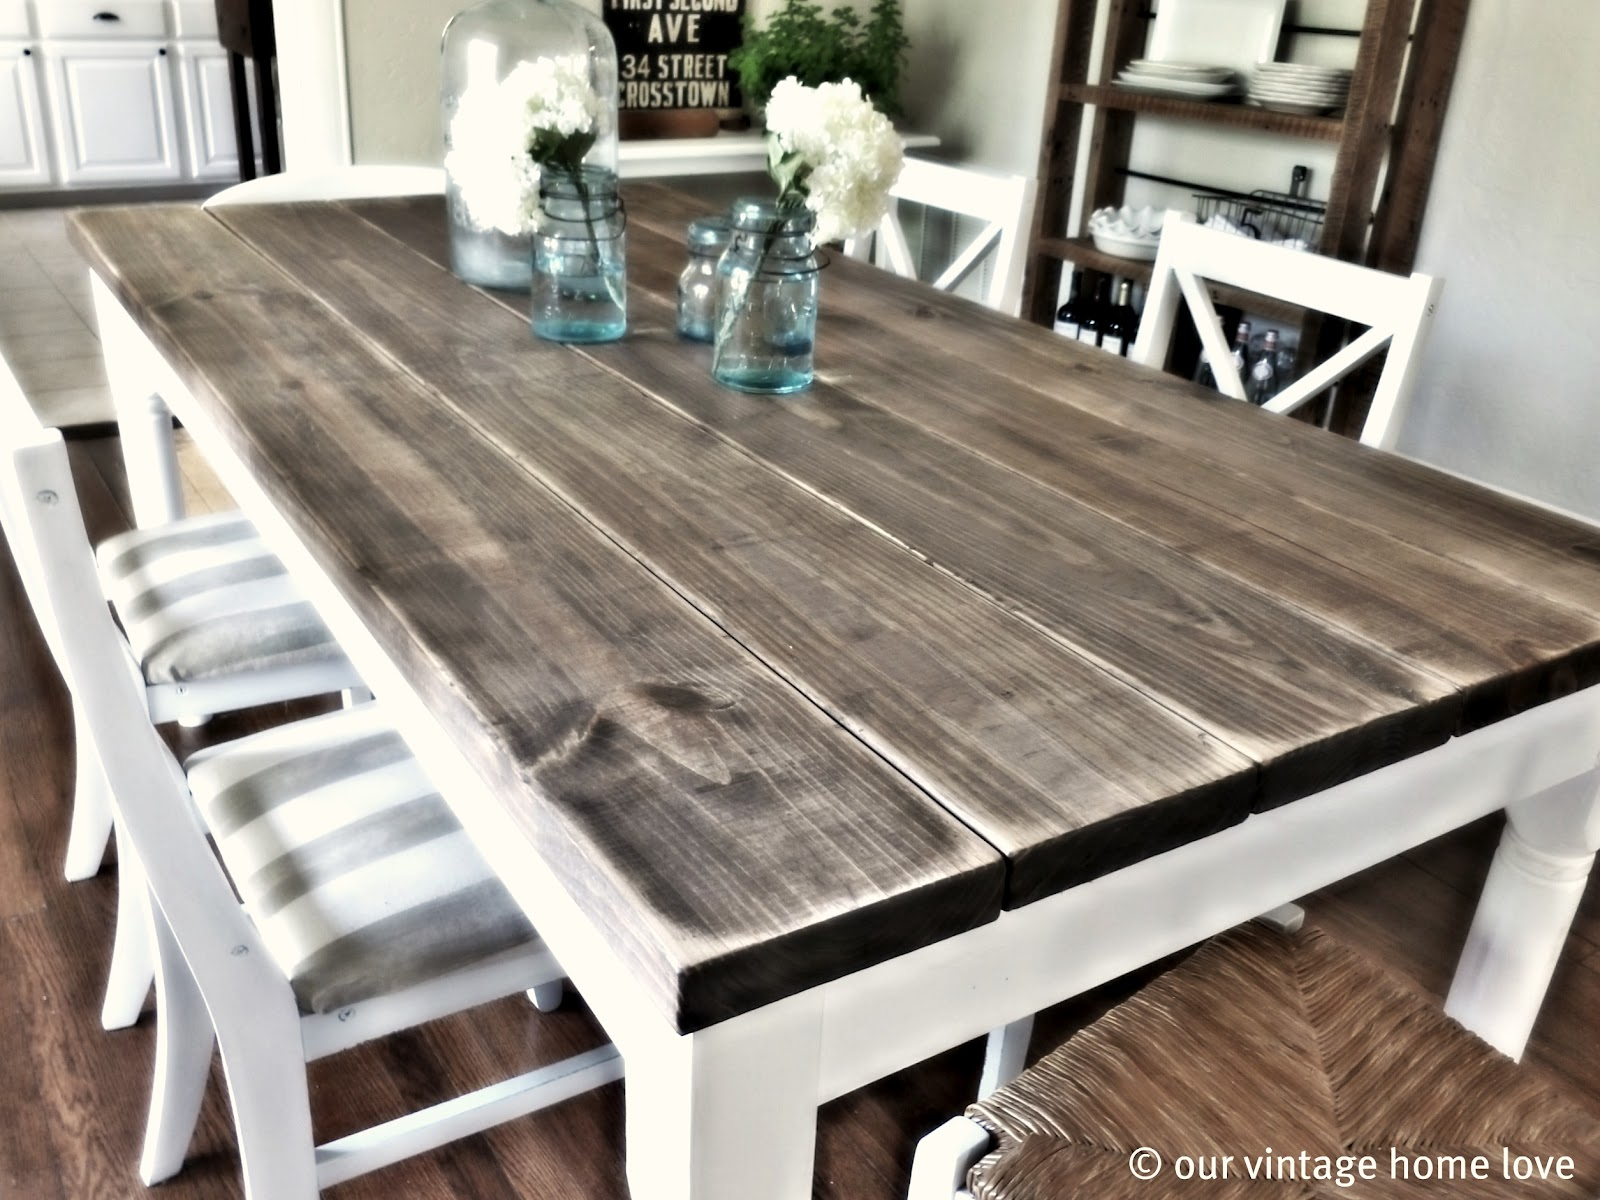 Vintage home love dining room table tutorial for Pictures of dining room tables